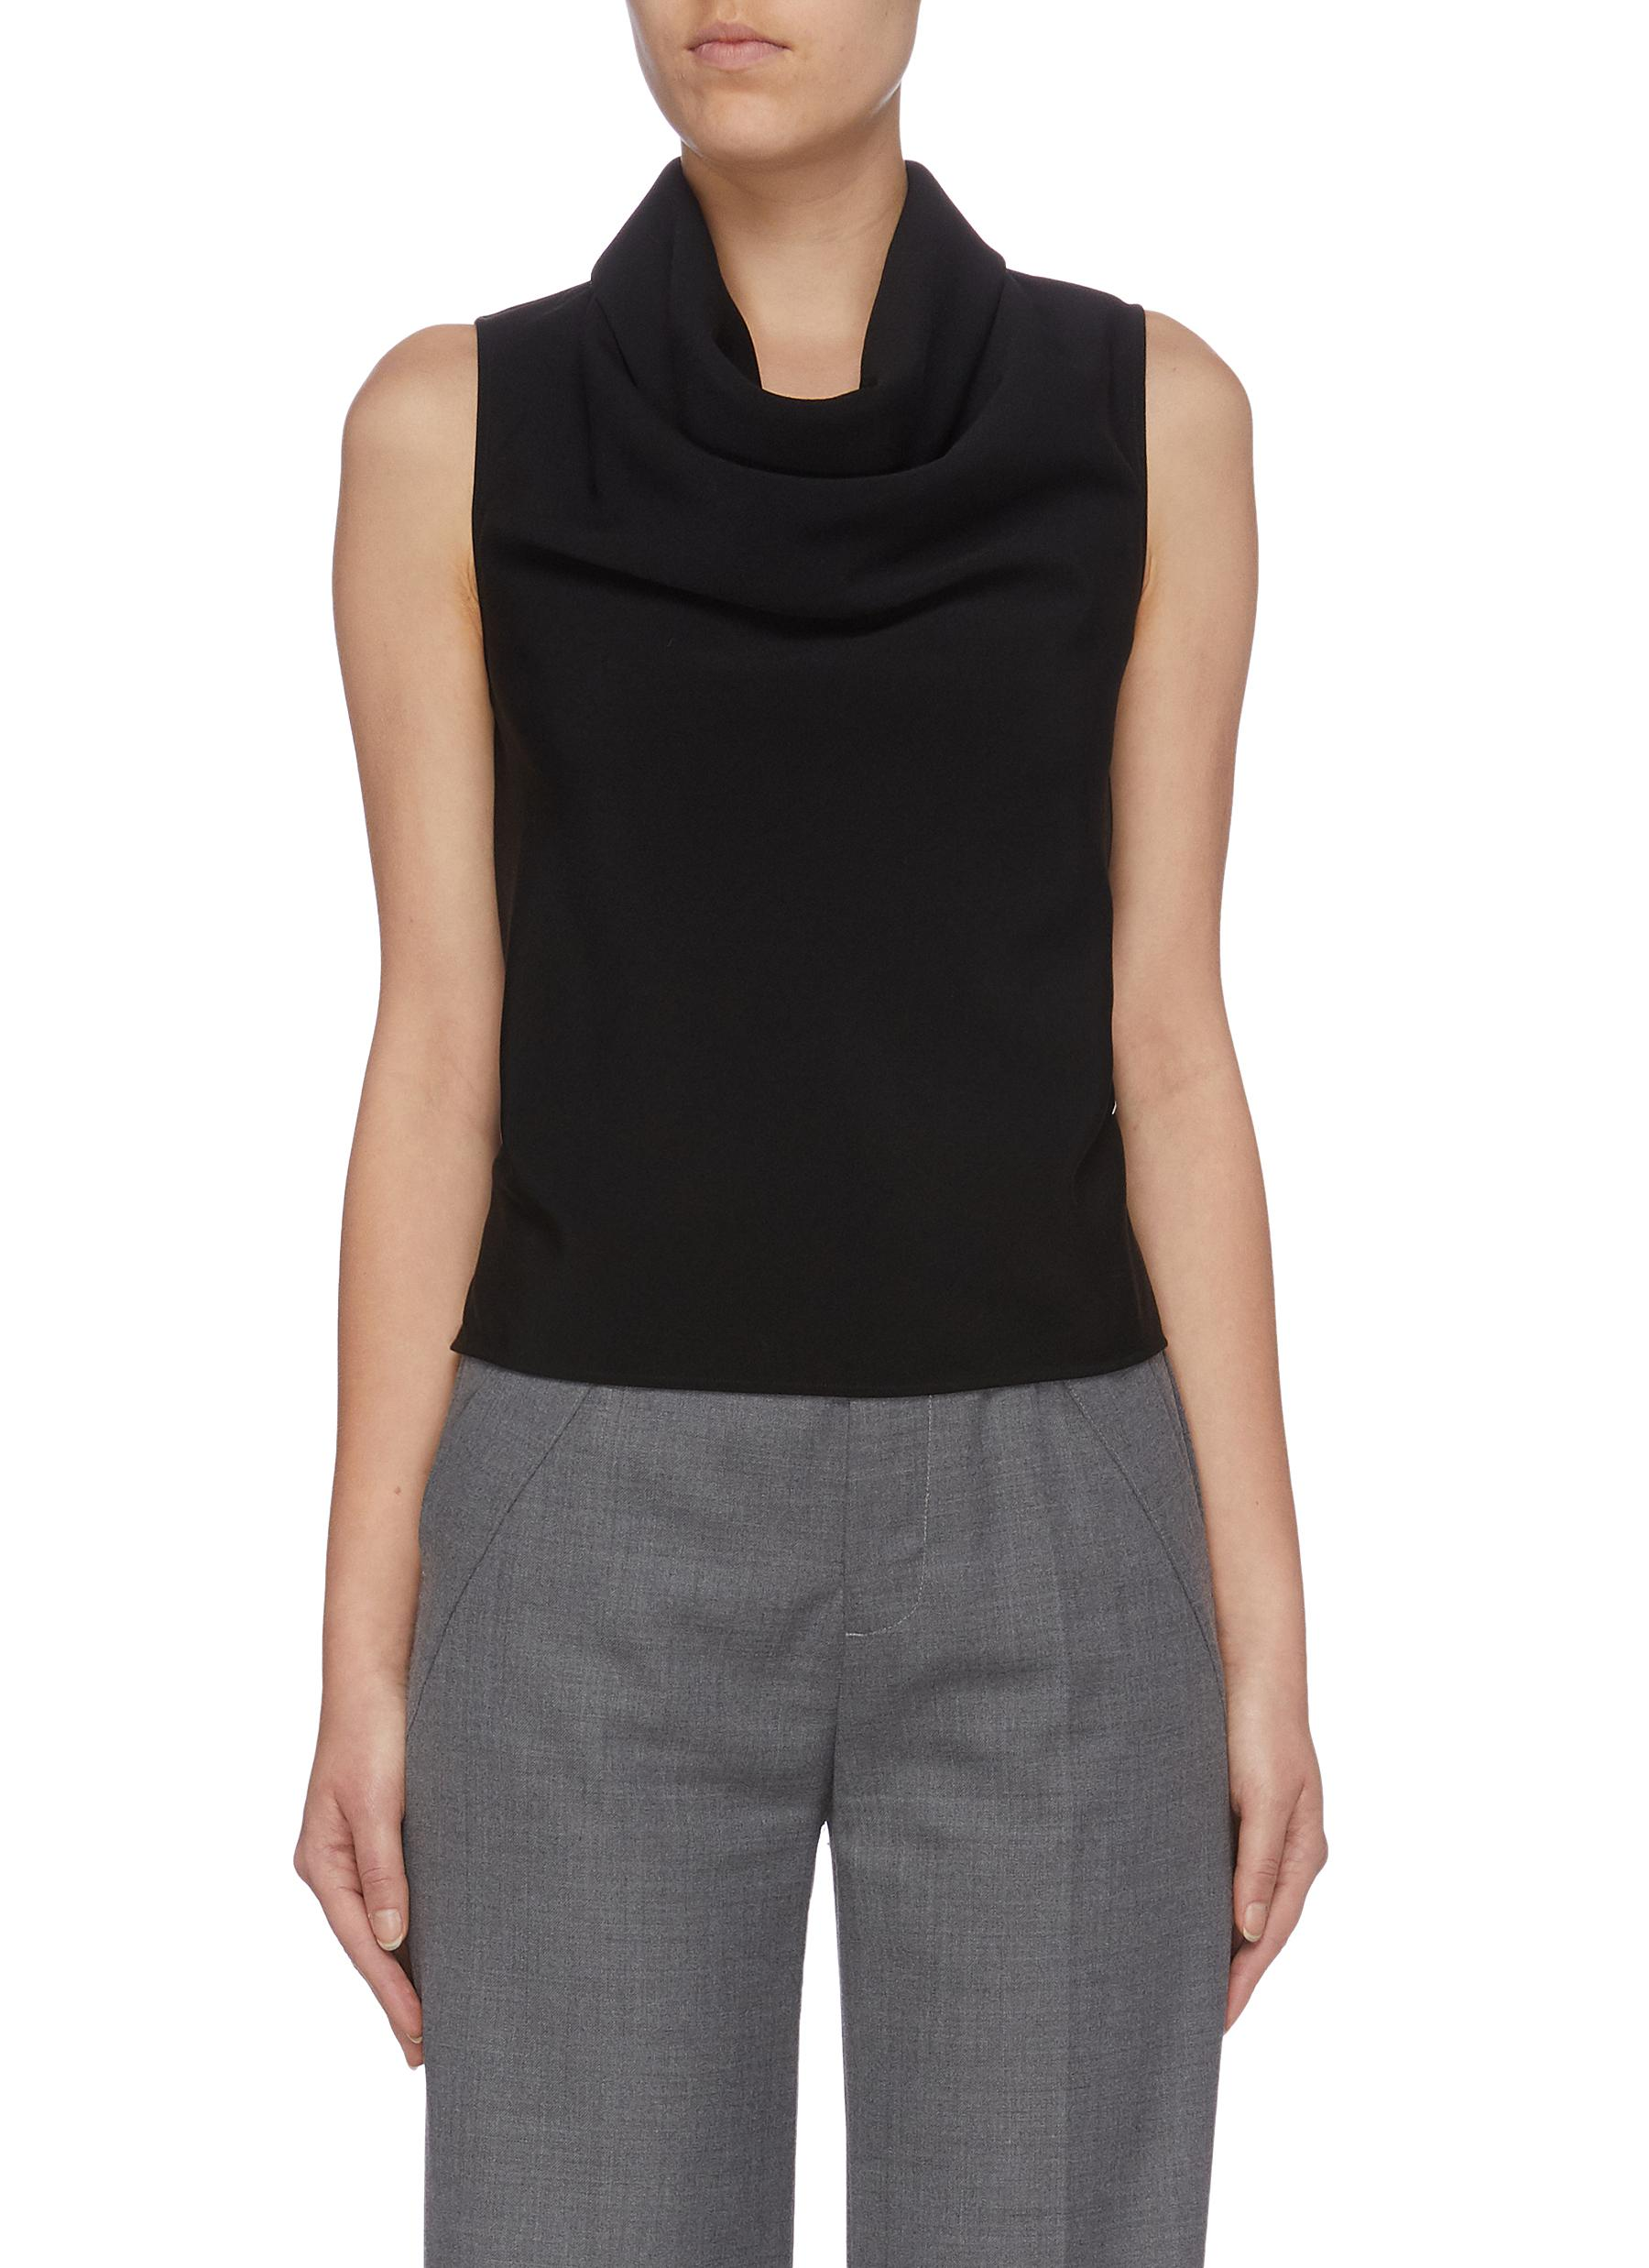 Tie open back cowl neck sleeveless top by Maison Margiela